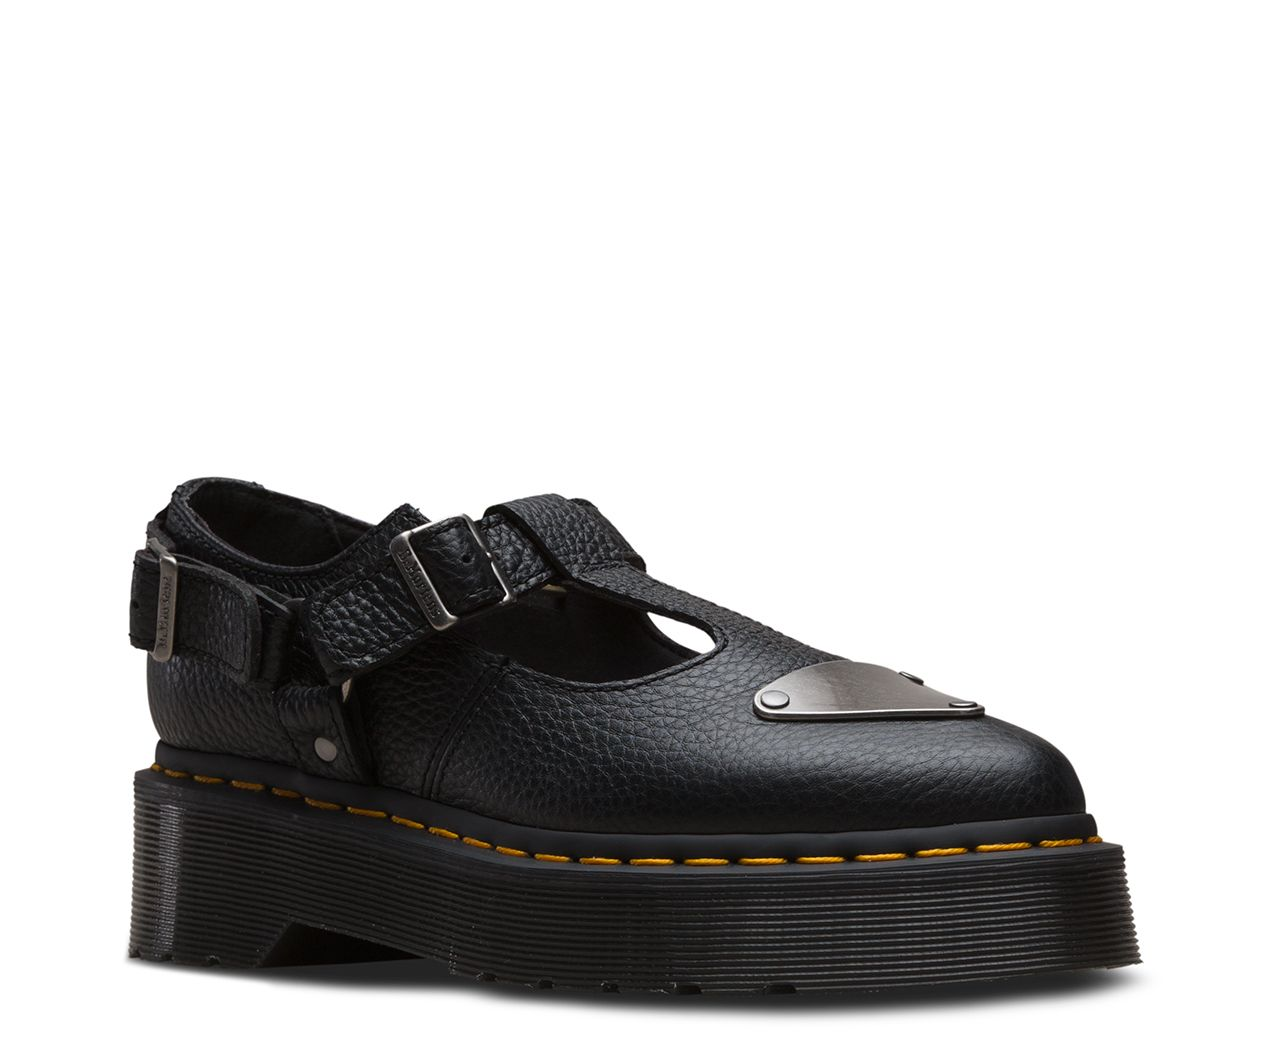 65427c39d3d0 DR MARTENS Caidos in 2019